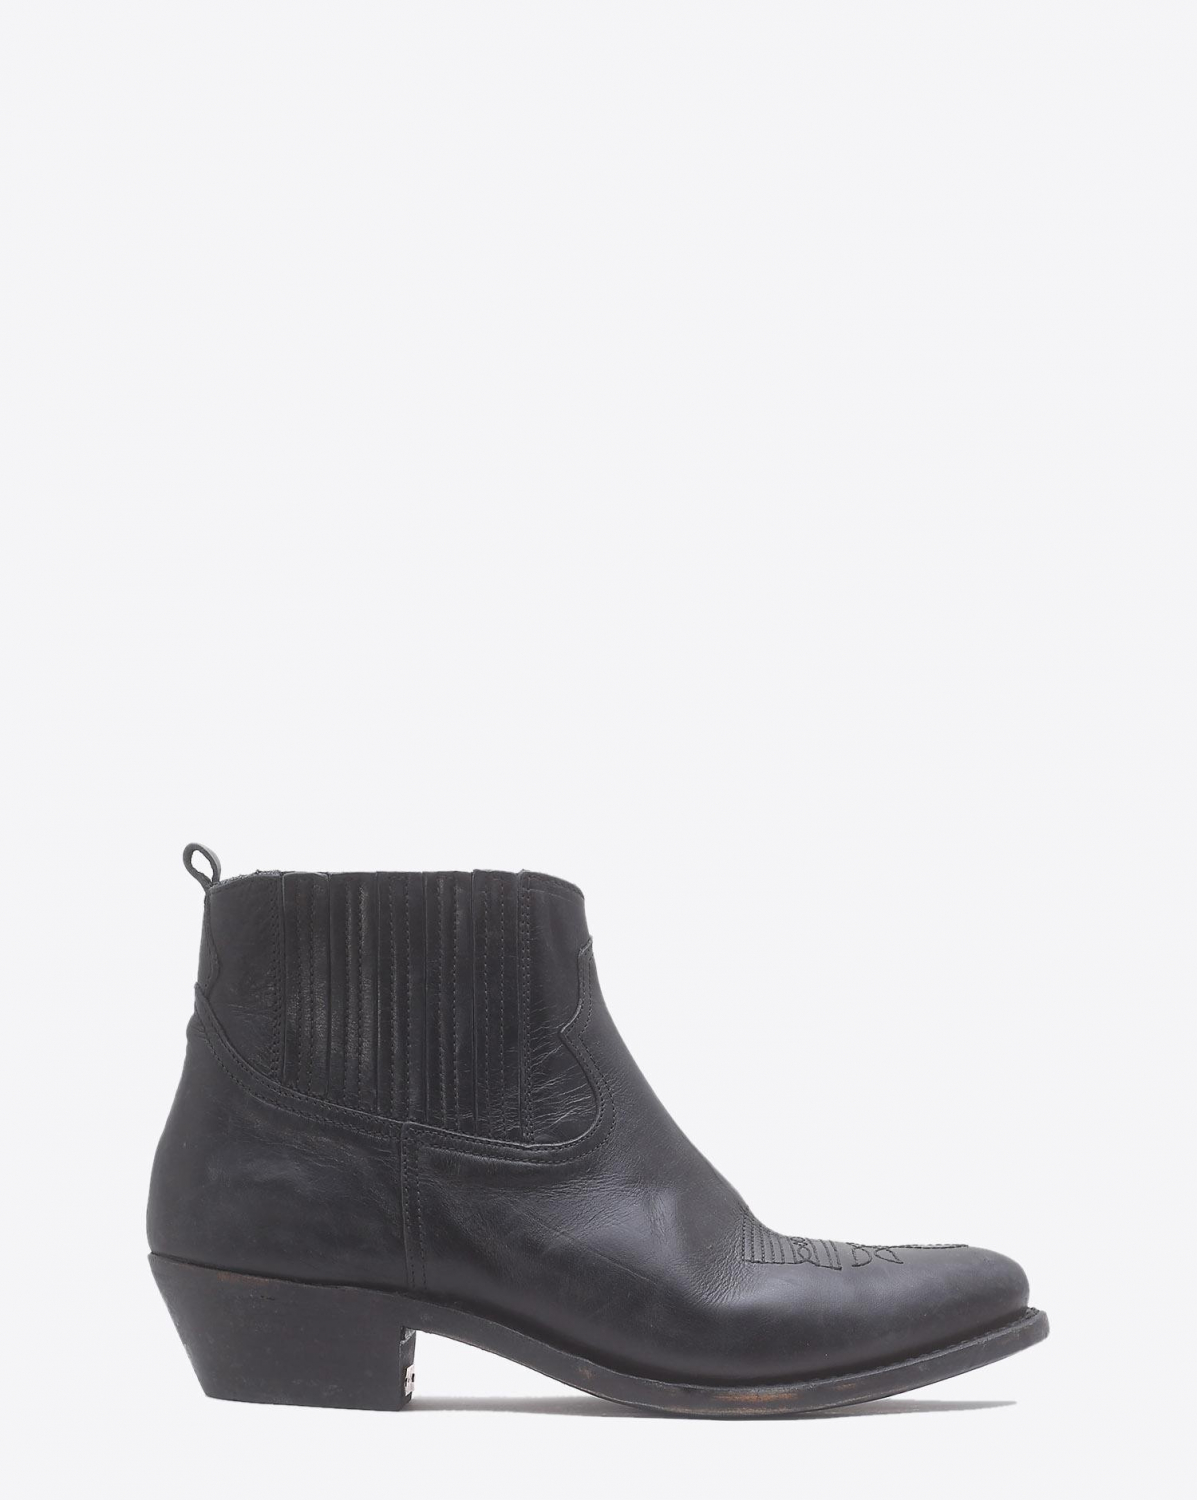 Golden Goose Woman Chaussures Pré-Collection Boots Crosby Black Leather